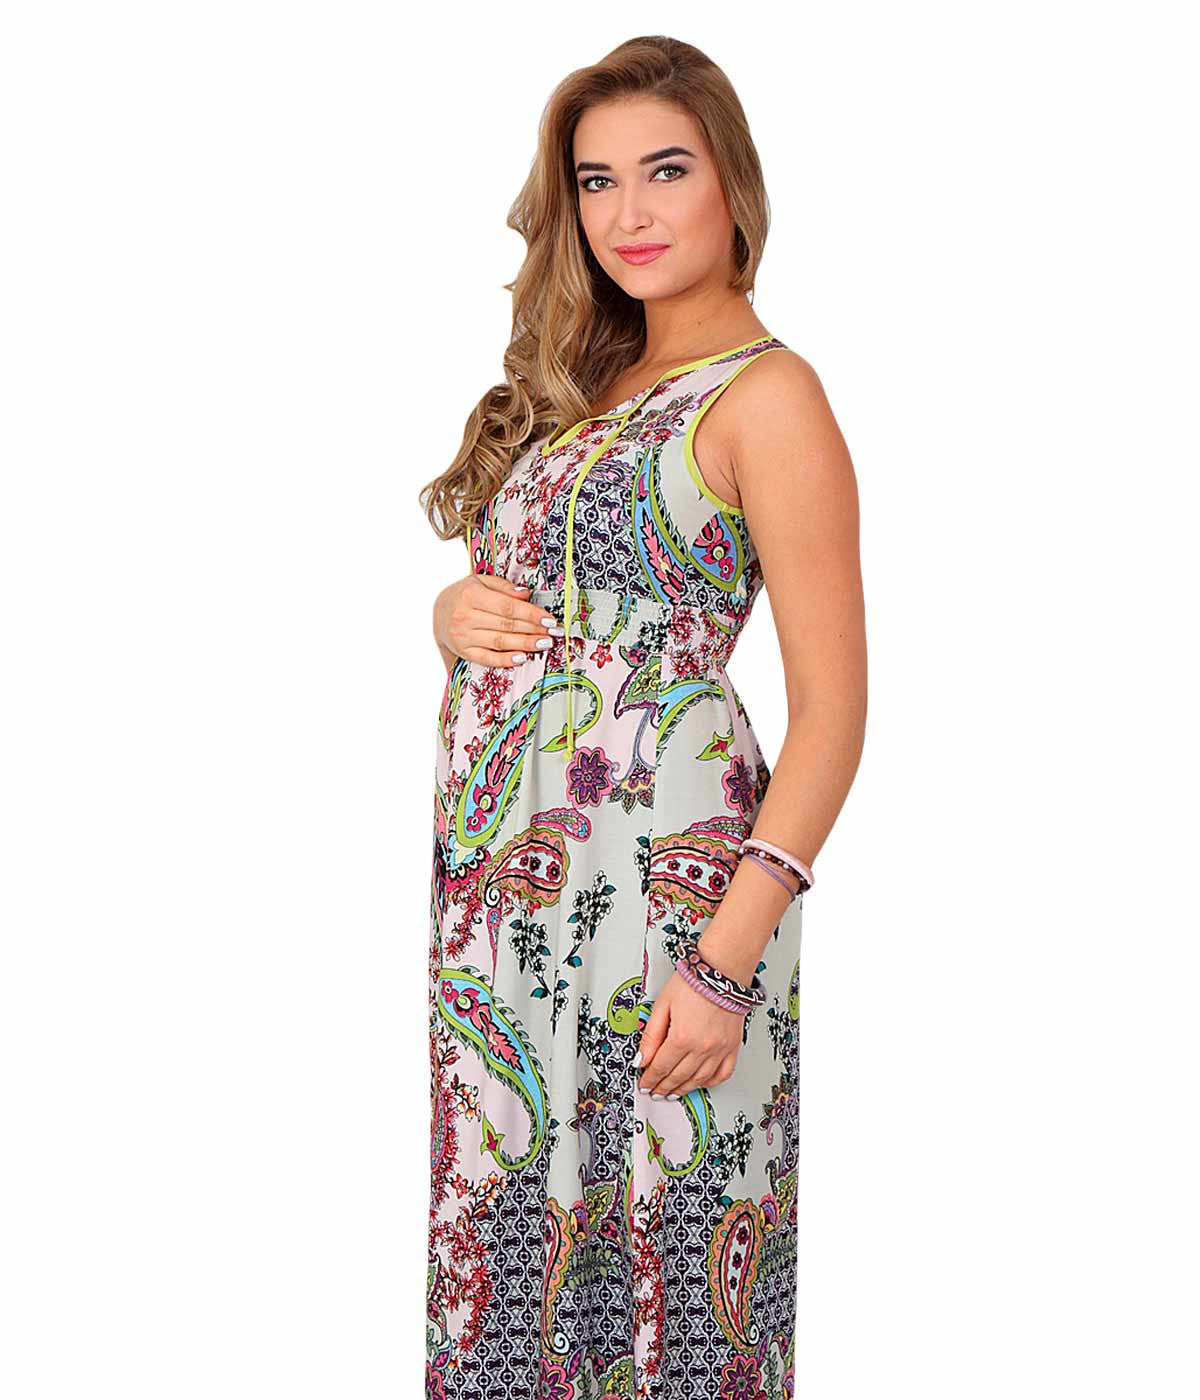 Maternity dresses smartmother uae mums fav online shop flowers paisley print long dress in maternity dresses in maternity smartmother ombrellifo Gallery